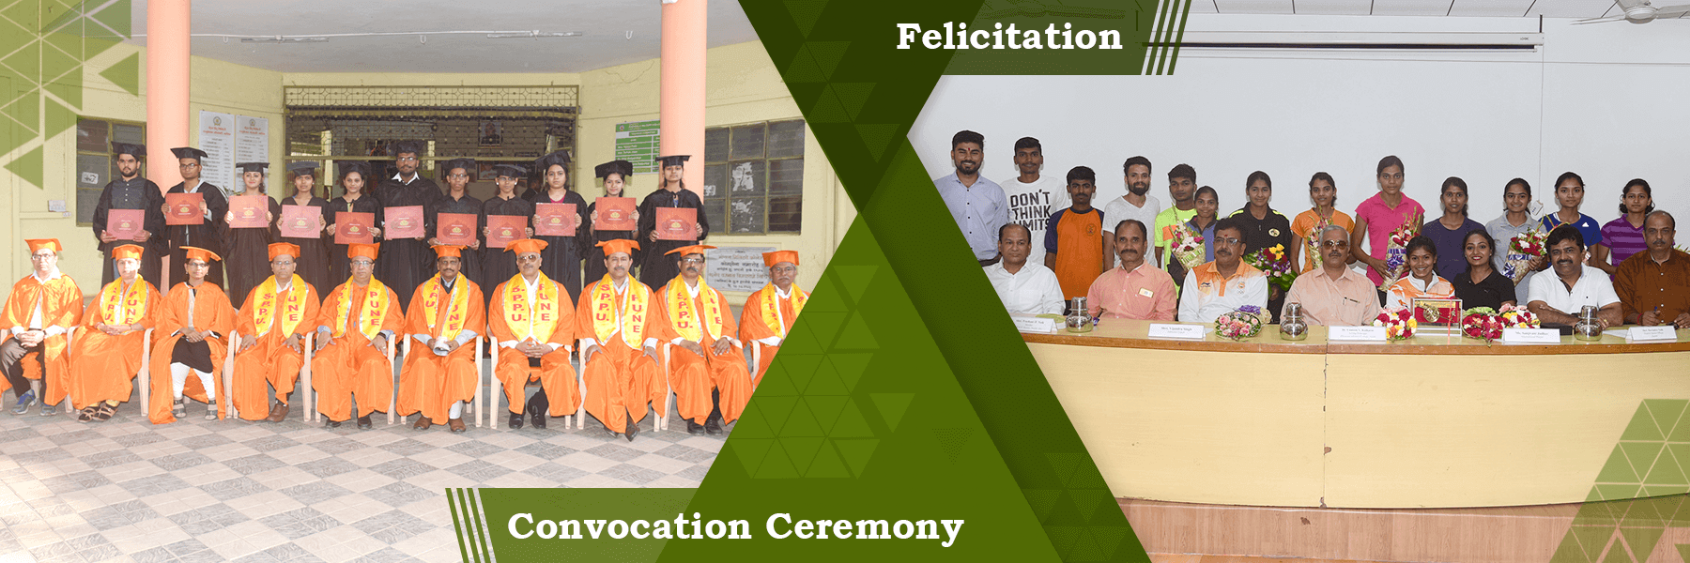 Convocation Ceremony_1&nb